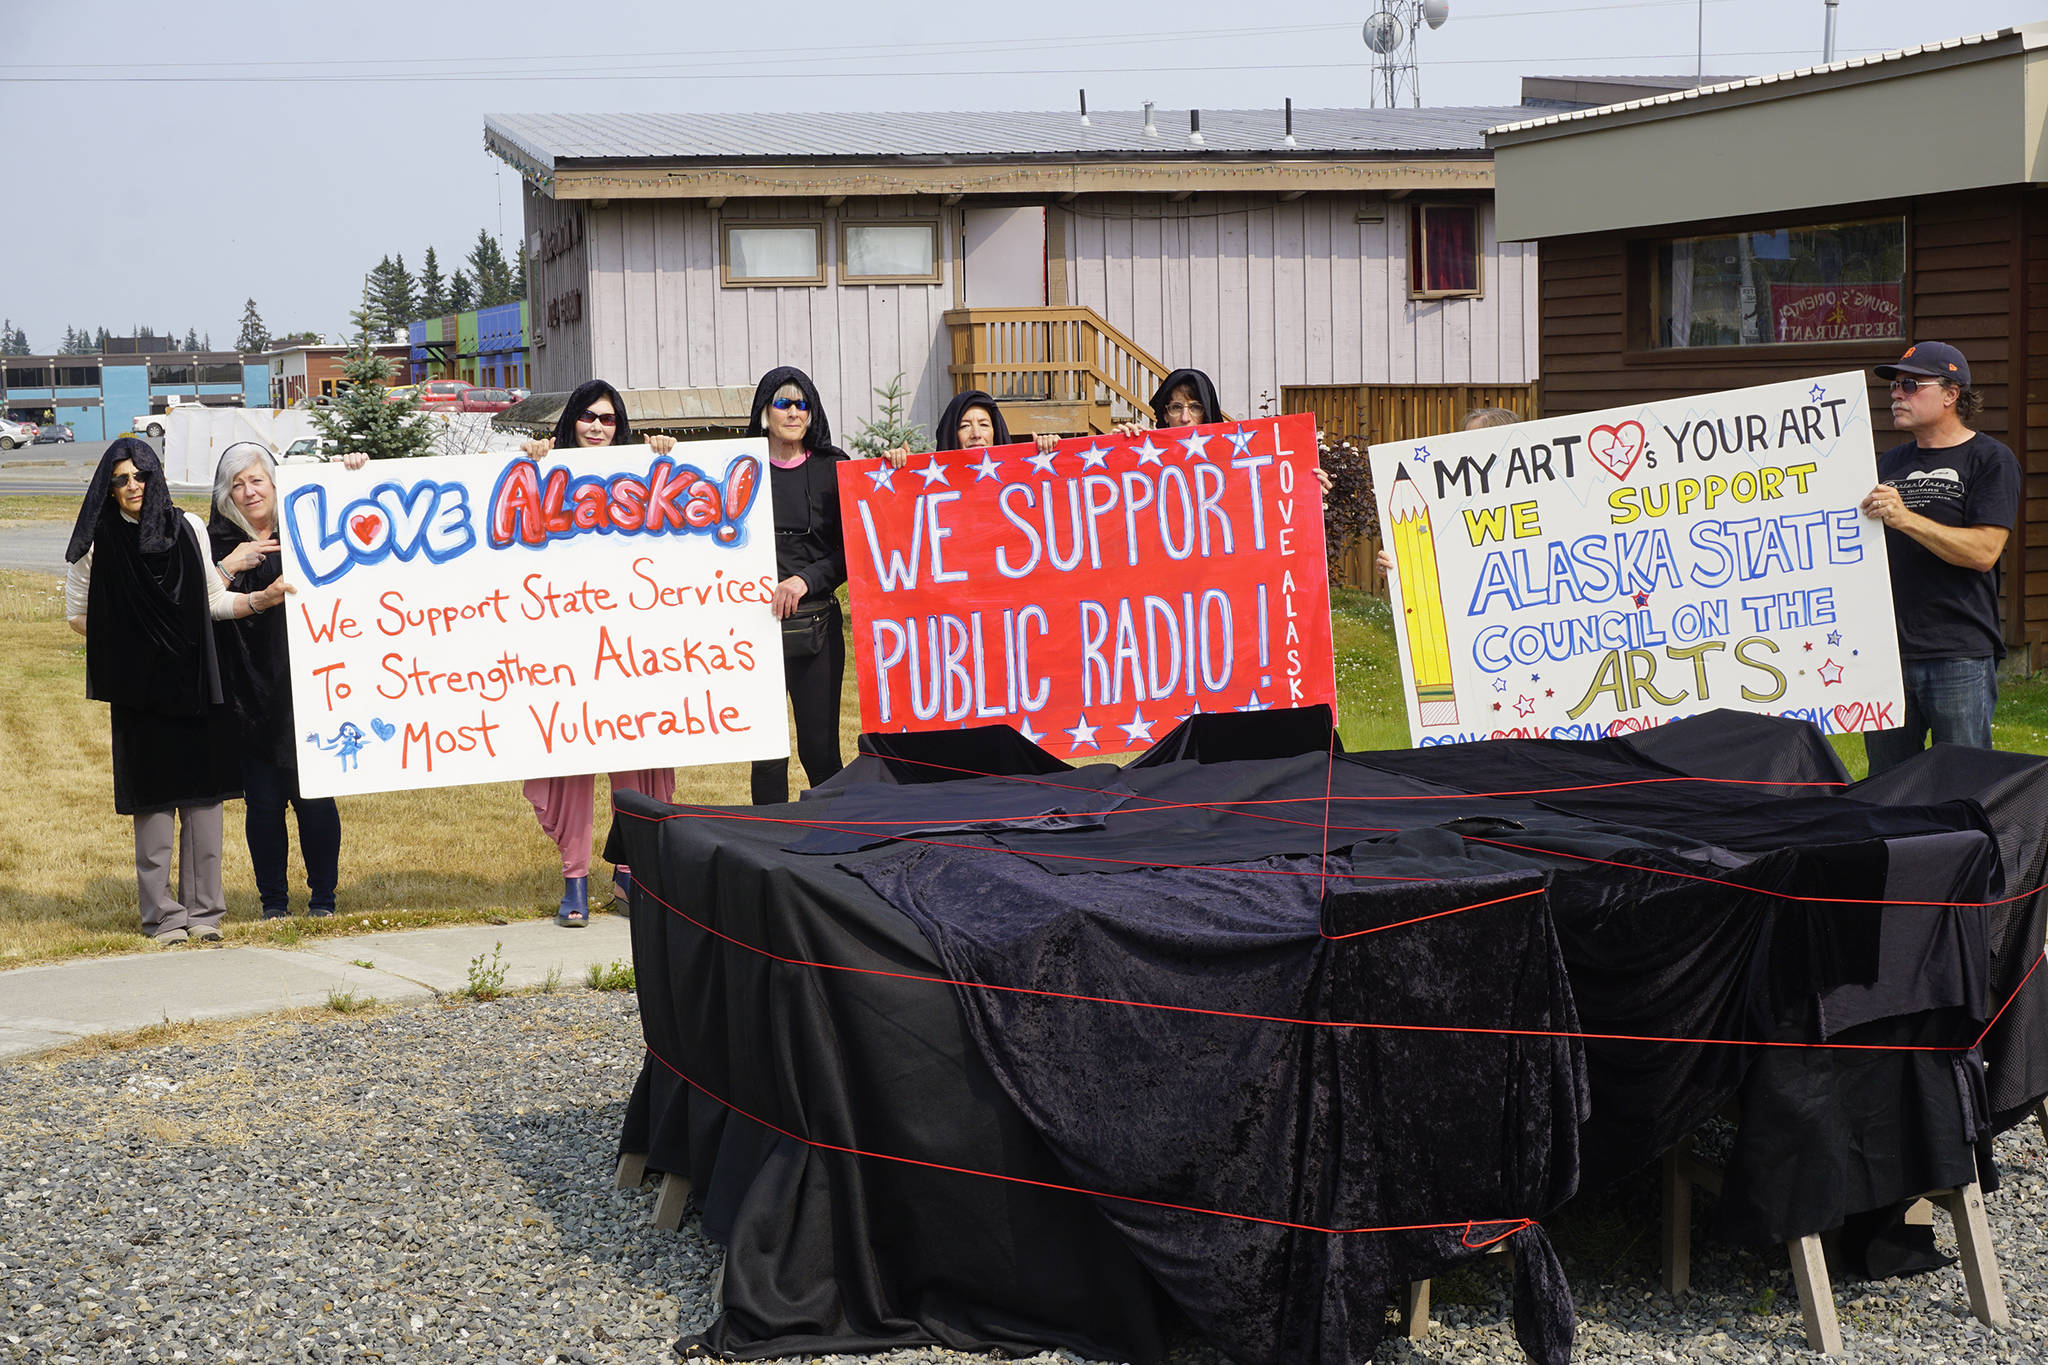 People draped in black hold signs on July 9, 2019, by Sean Derry's public art sculpture in Homer, Alaska, as part of a statewide art intervention to protest Gov. Mike Dunleavy's veto of a $2.8 million state appropriation to the Alaska State Council on the Arts. They also supported a general override of Dunleavy's vetoes that will affect funding for the University of Alaska, public radio and other programs. Derry's sculpture was commissioned as a 1% for art project associated with the remodeling of Pioneer Hall at the Kachemak Bay Campus, Kenai Peninsula College, University of Alaska. The protest was not sanctioned by the college. (Photo by Michael Armstrong/Homer News)